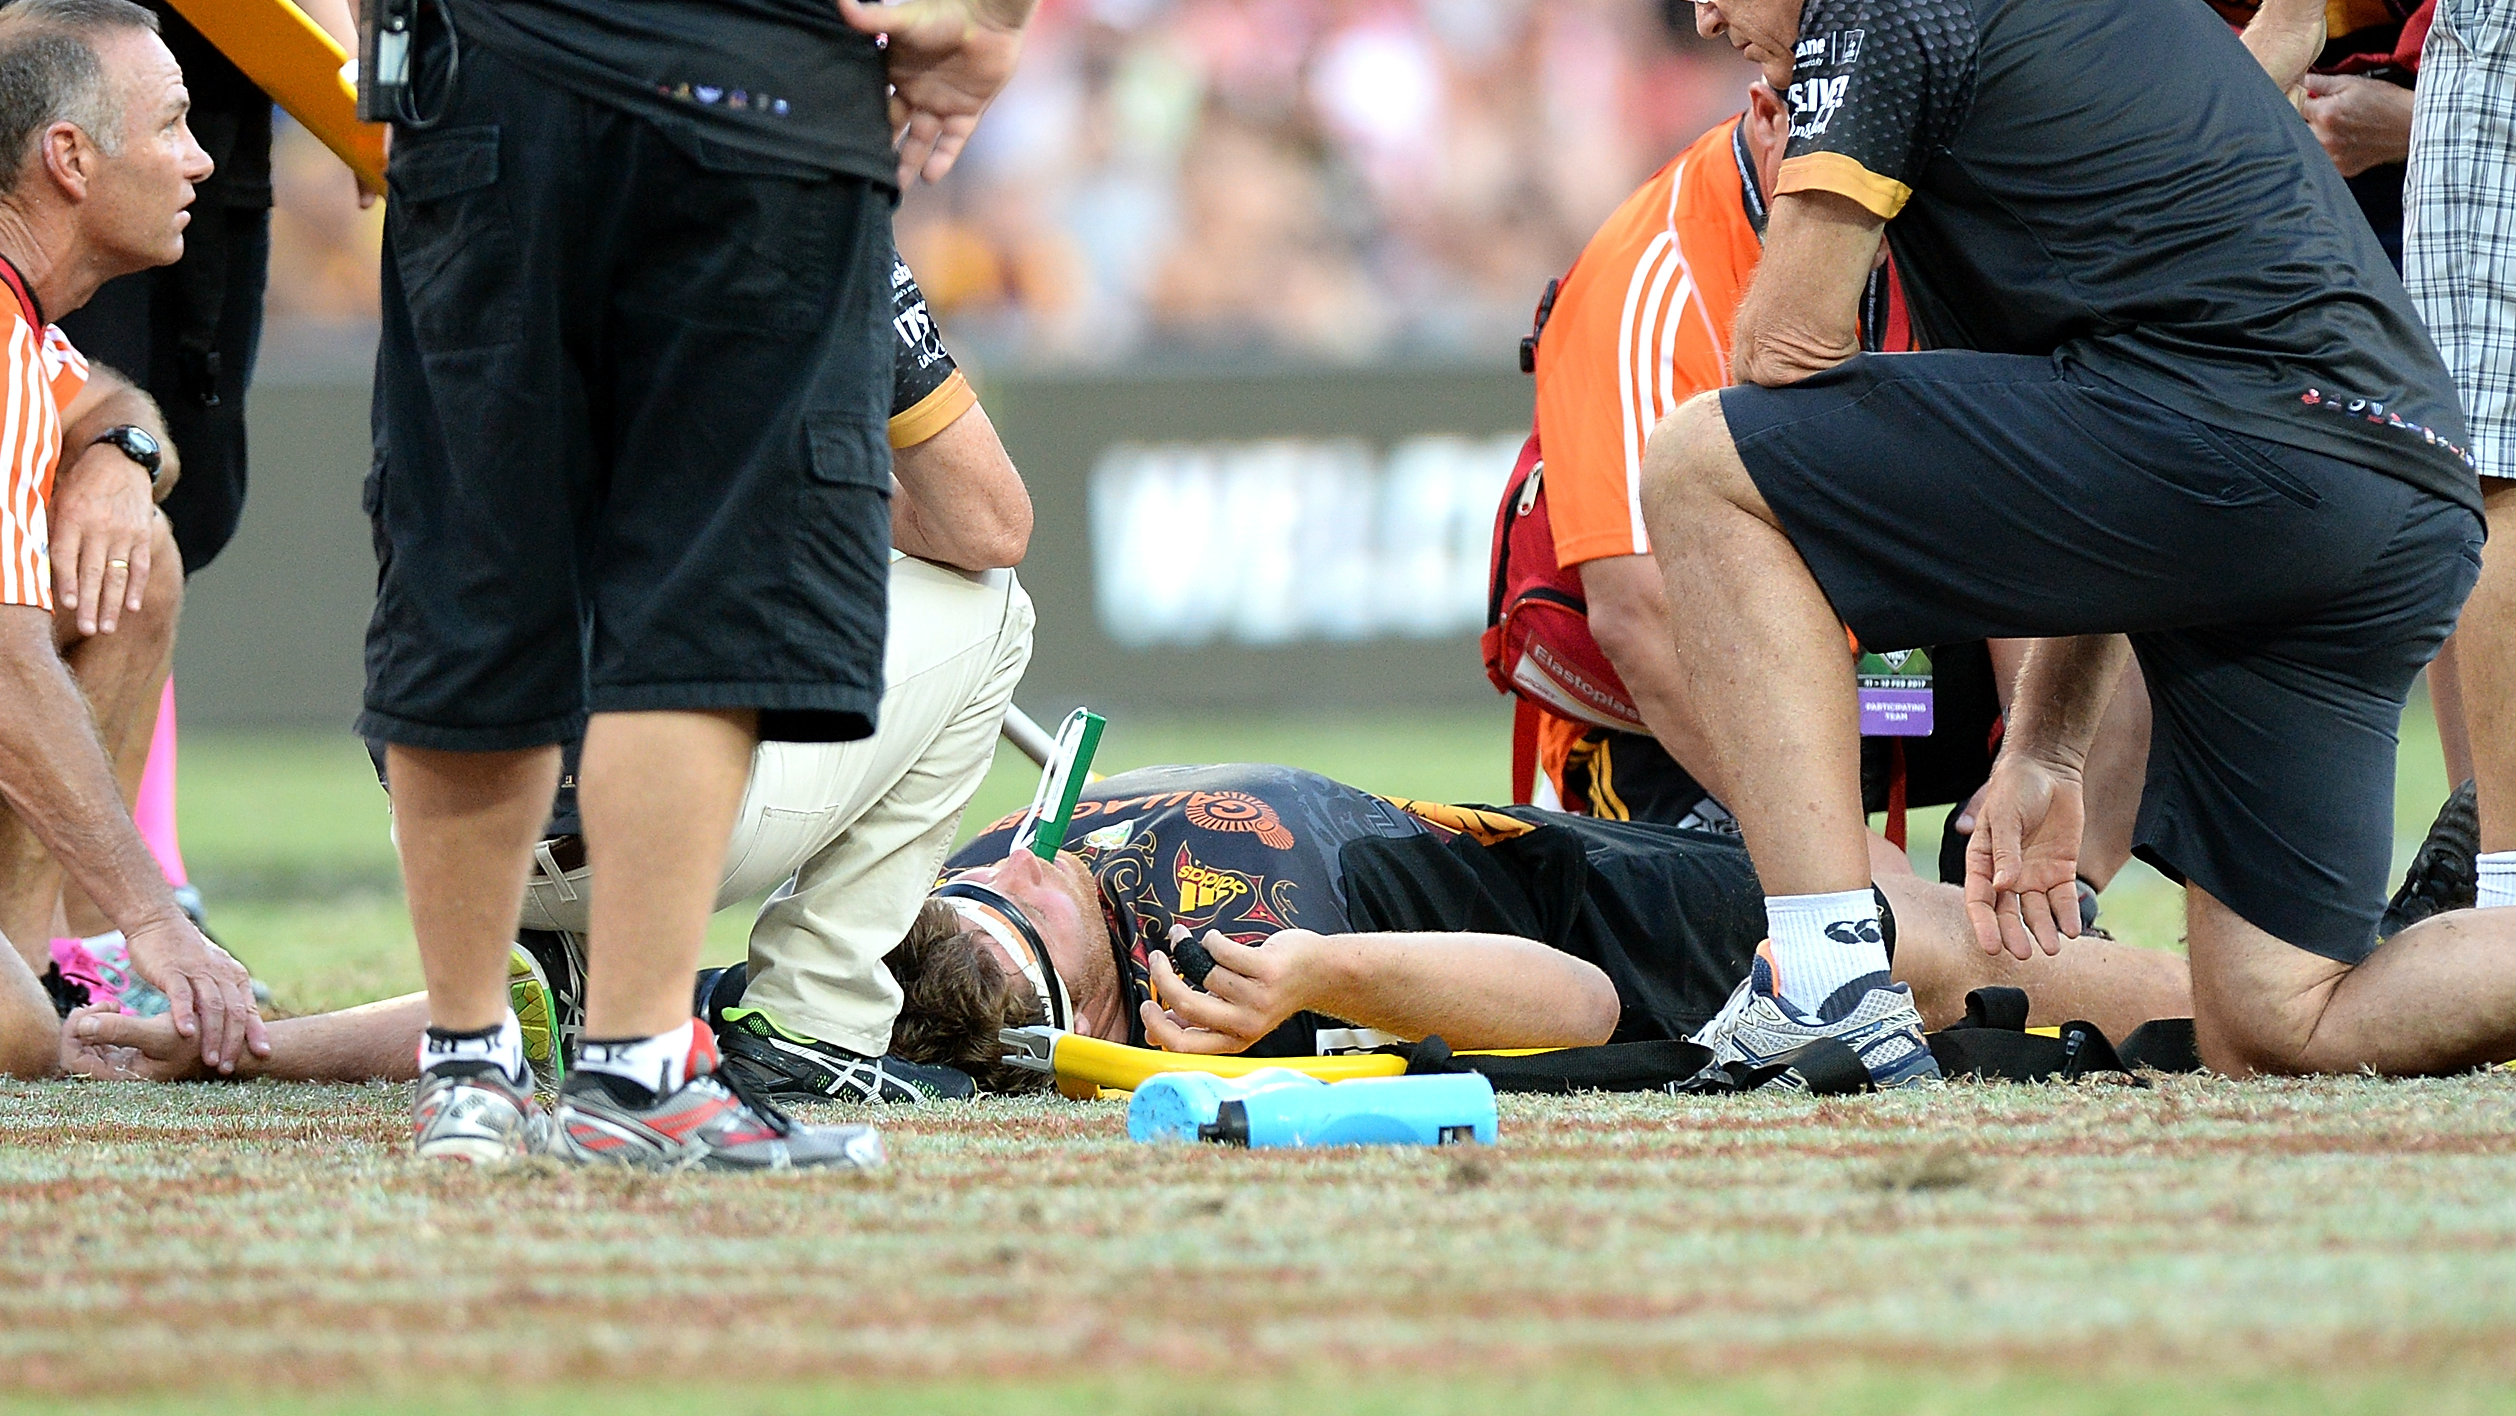 #mitchell graham injury